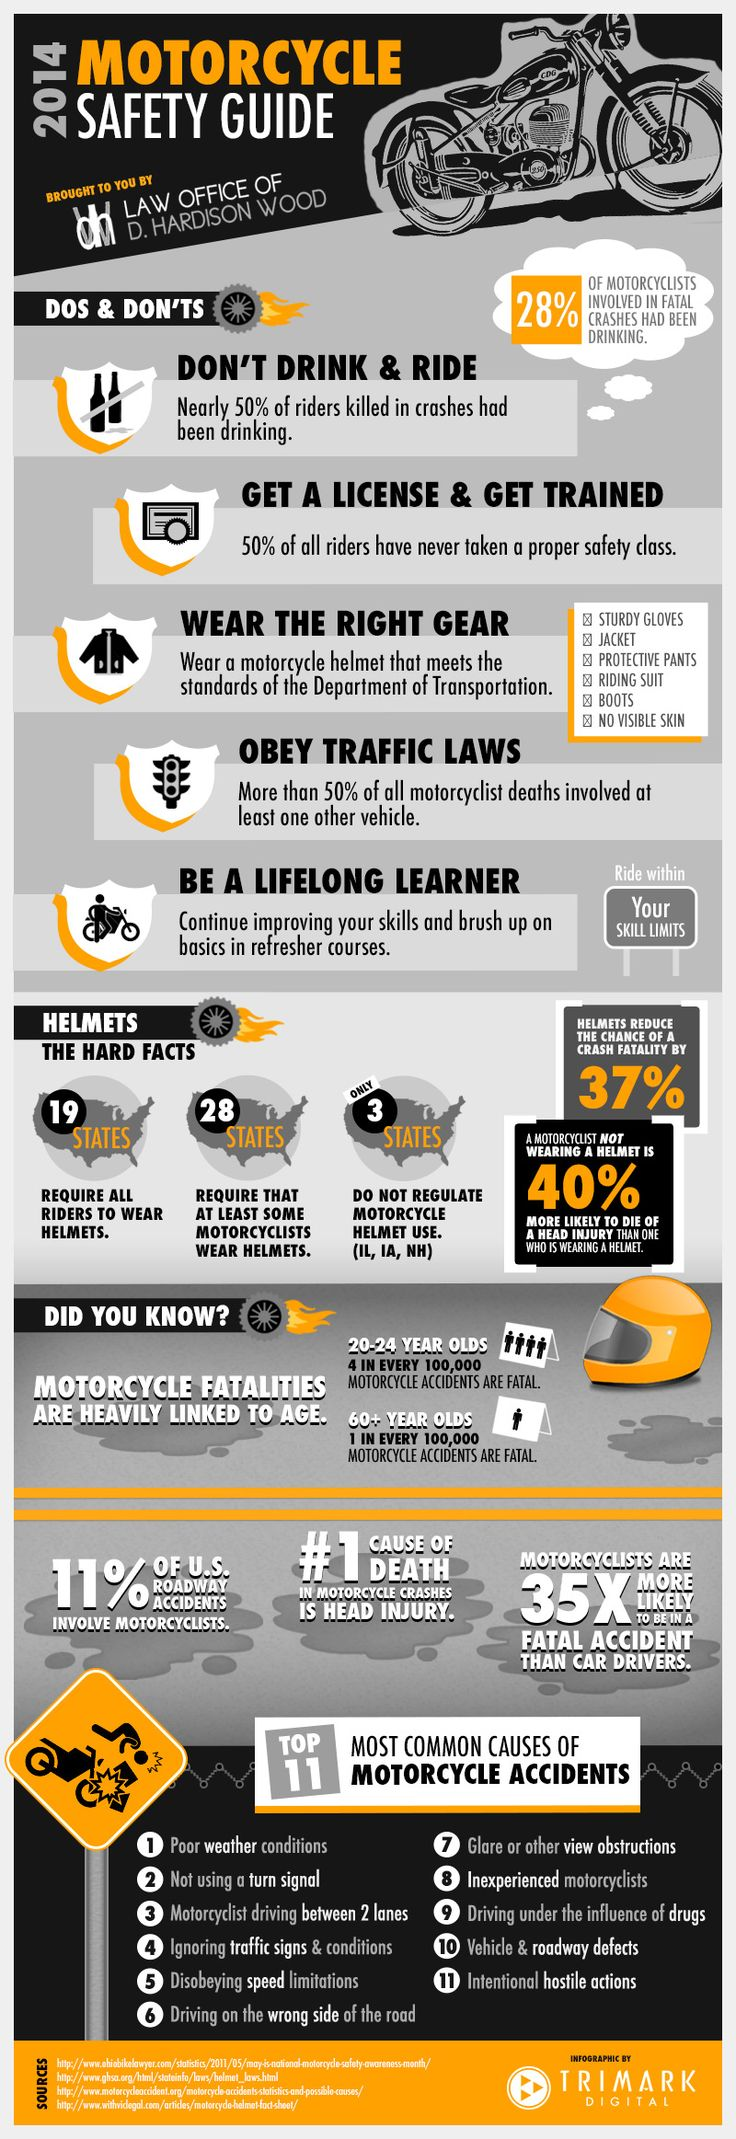 13 Best Ready Ride Images On Pinterest Bicycles Infographic And Kawasaki Klr650 Color Wiring Diagram Xe May Honda Vision 2015 View Is Motorcycle Safety Awareness Month Check Out Our User Friendly Visual